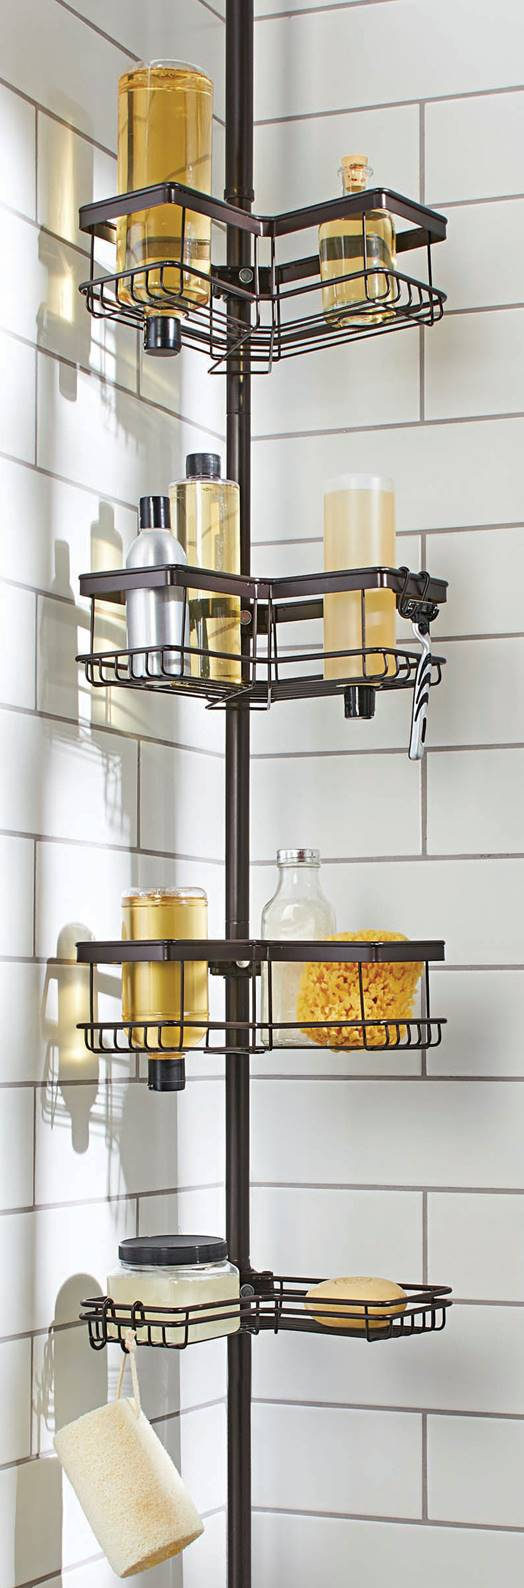 Click here to buy Better Homes & Gardens Contoured Tension Pole Shower Caddy, Oil-Rubbed Bronze by Supplier Generic.